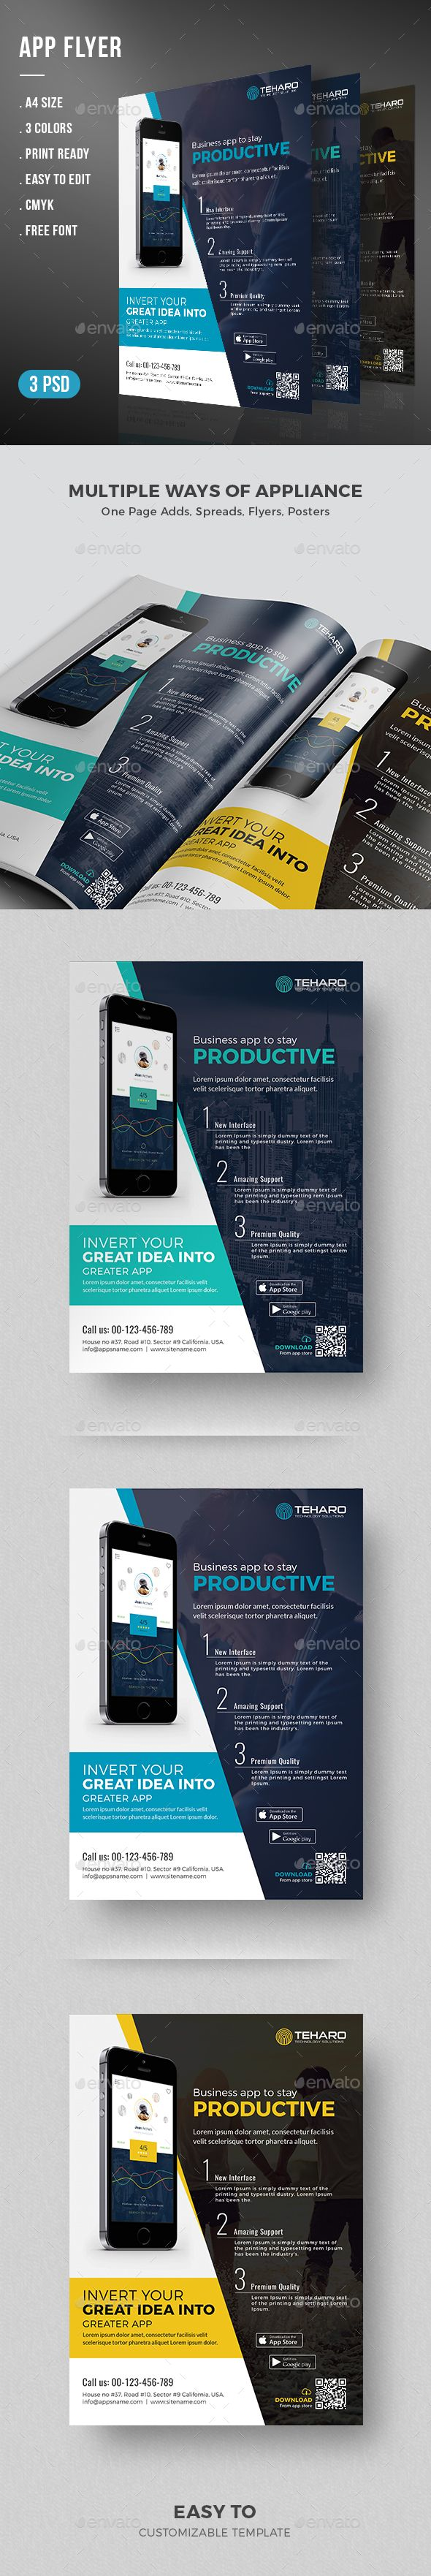 App Flyer -App Promotional Flyer Template http://graphicriver.net/item/app-flyer/15226867?ref=themedevisers